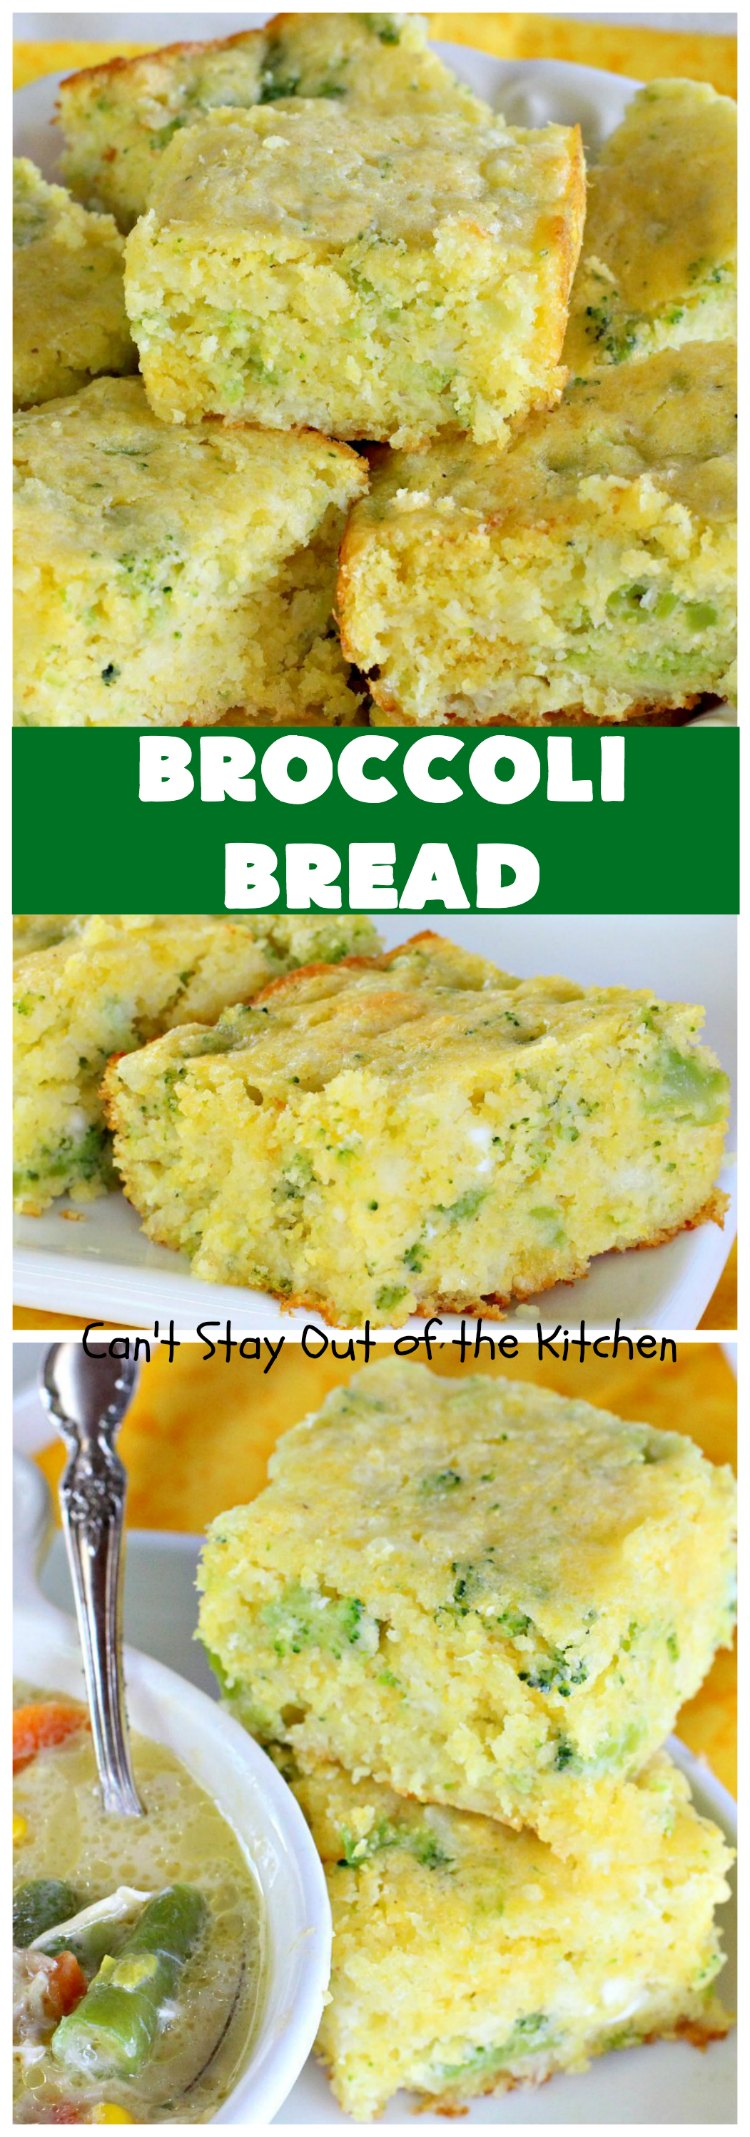 Broccoli Bread | Can't Stay Out of the Kitchen